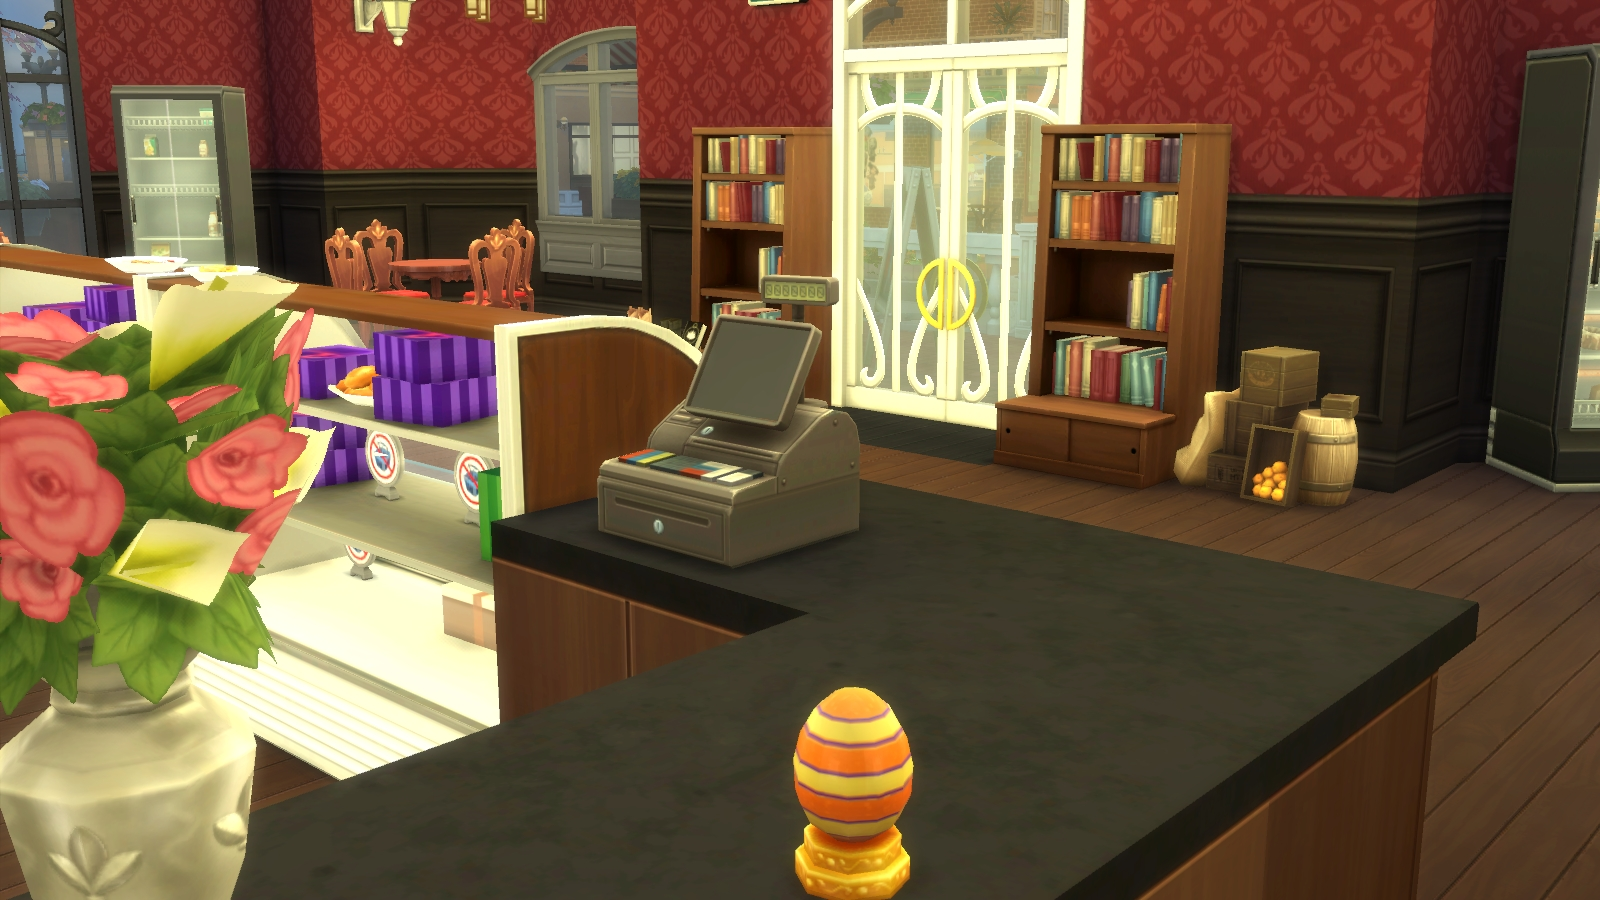 Setting Up A Bakery in The Sims 4 Get To Work